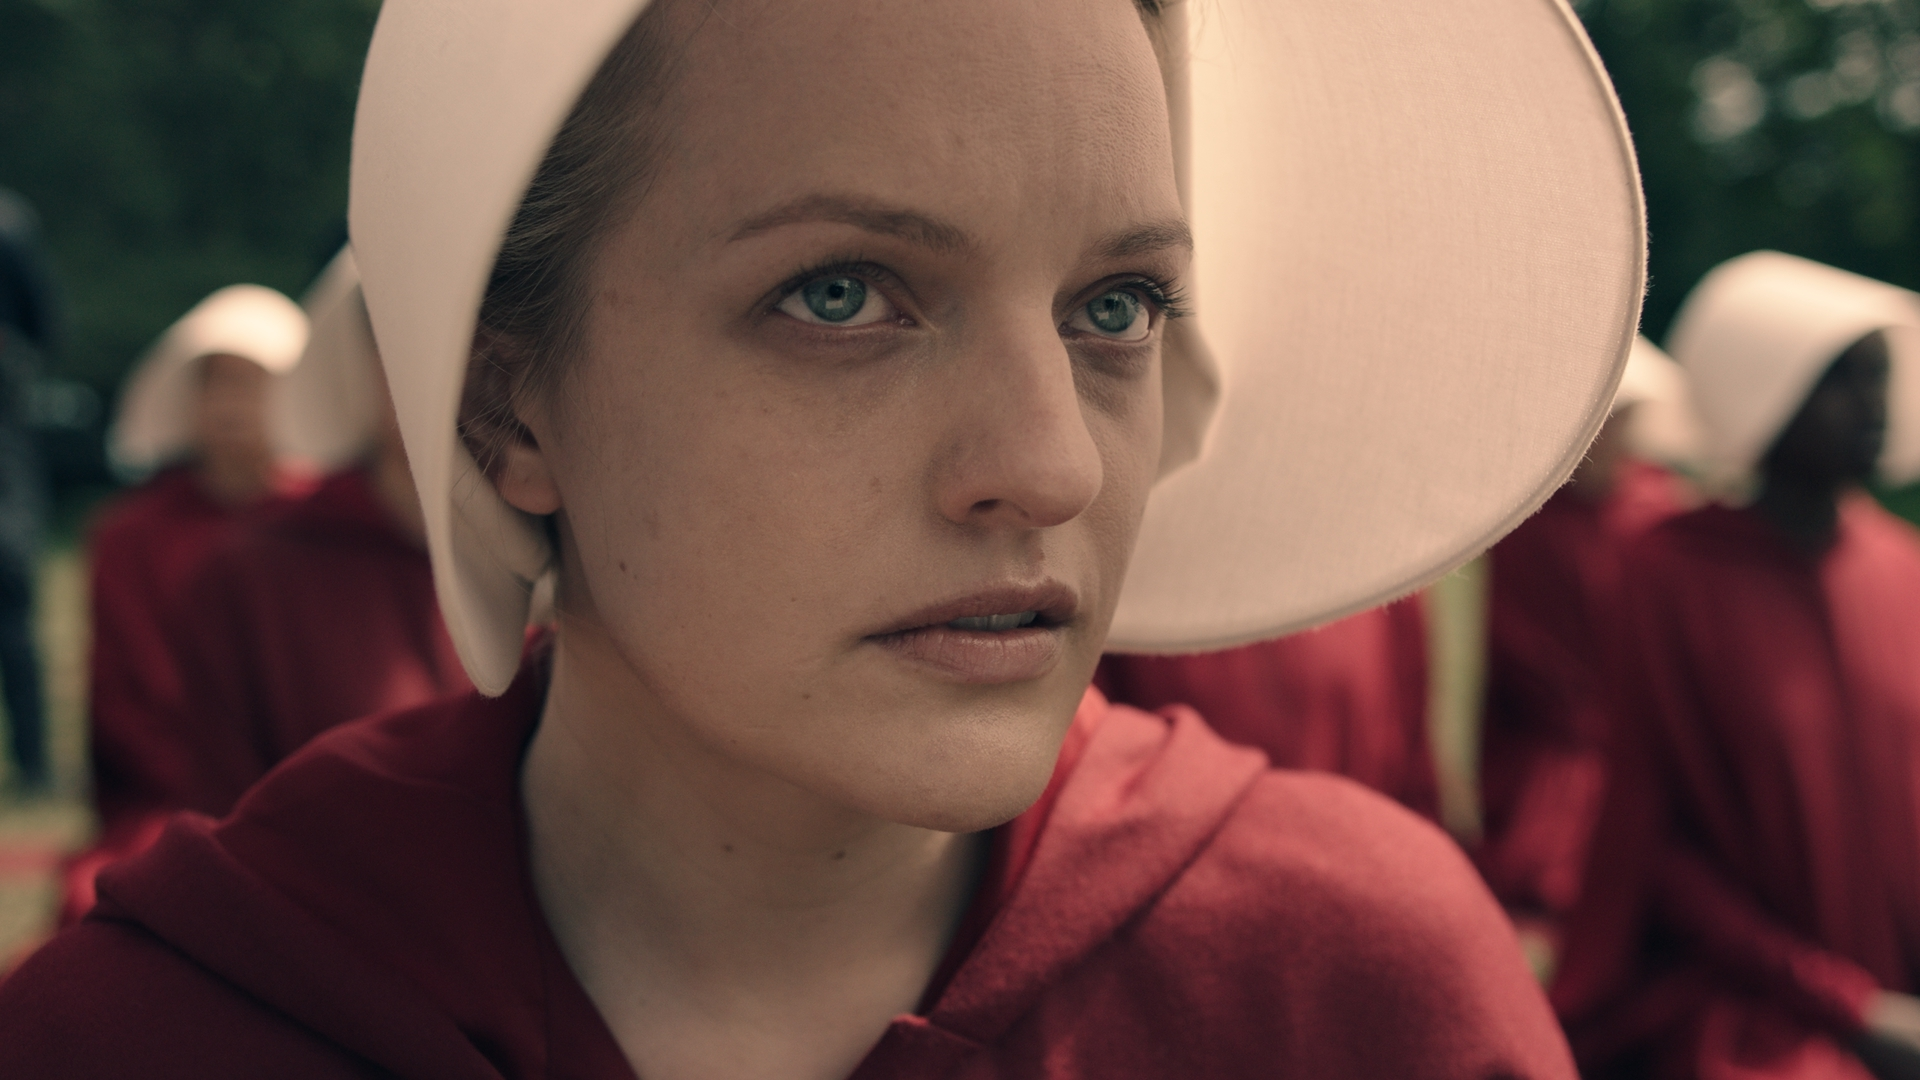 Elizabeth Moss as Offred